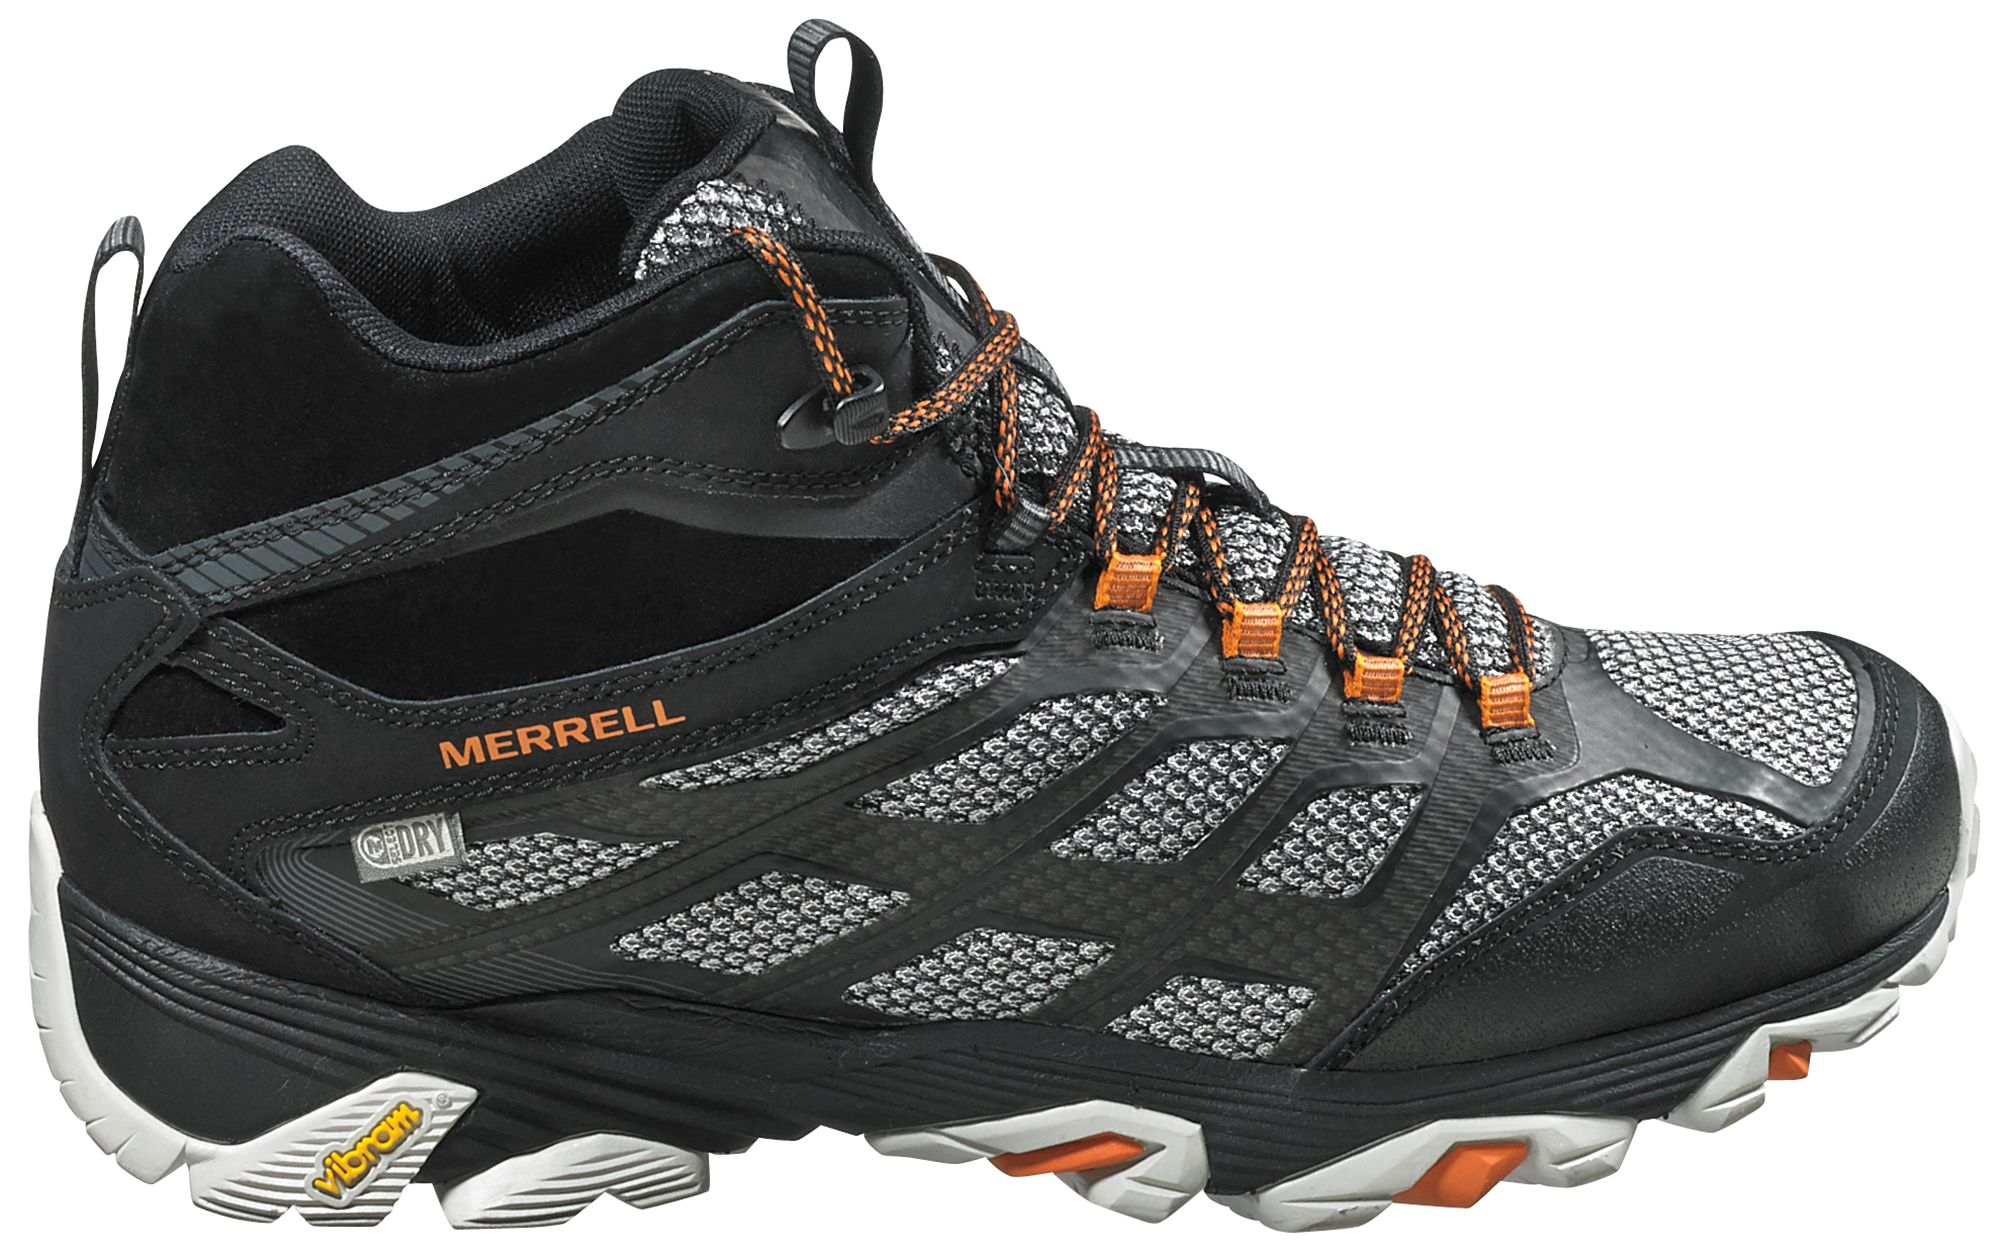 Merrell Men's Moab FST Mid Waterproof Hiking Boots| DICK'S ...